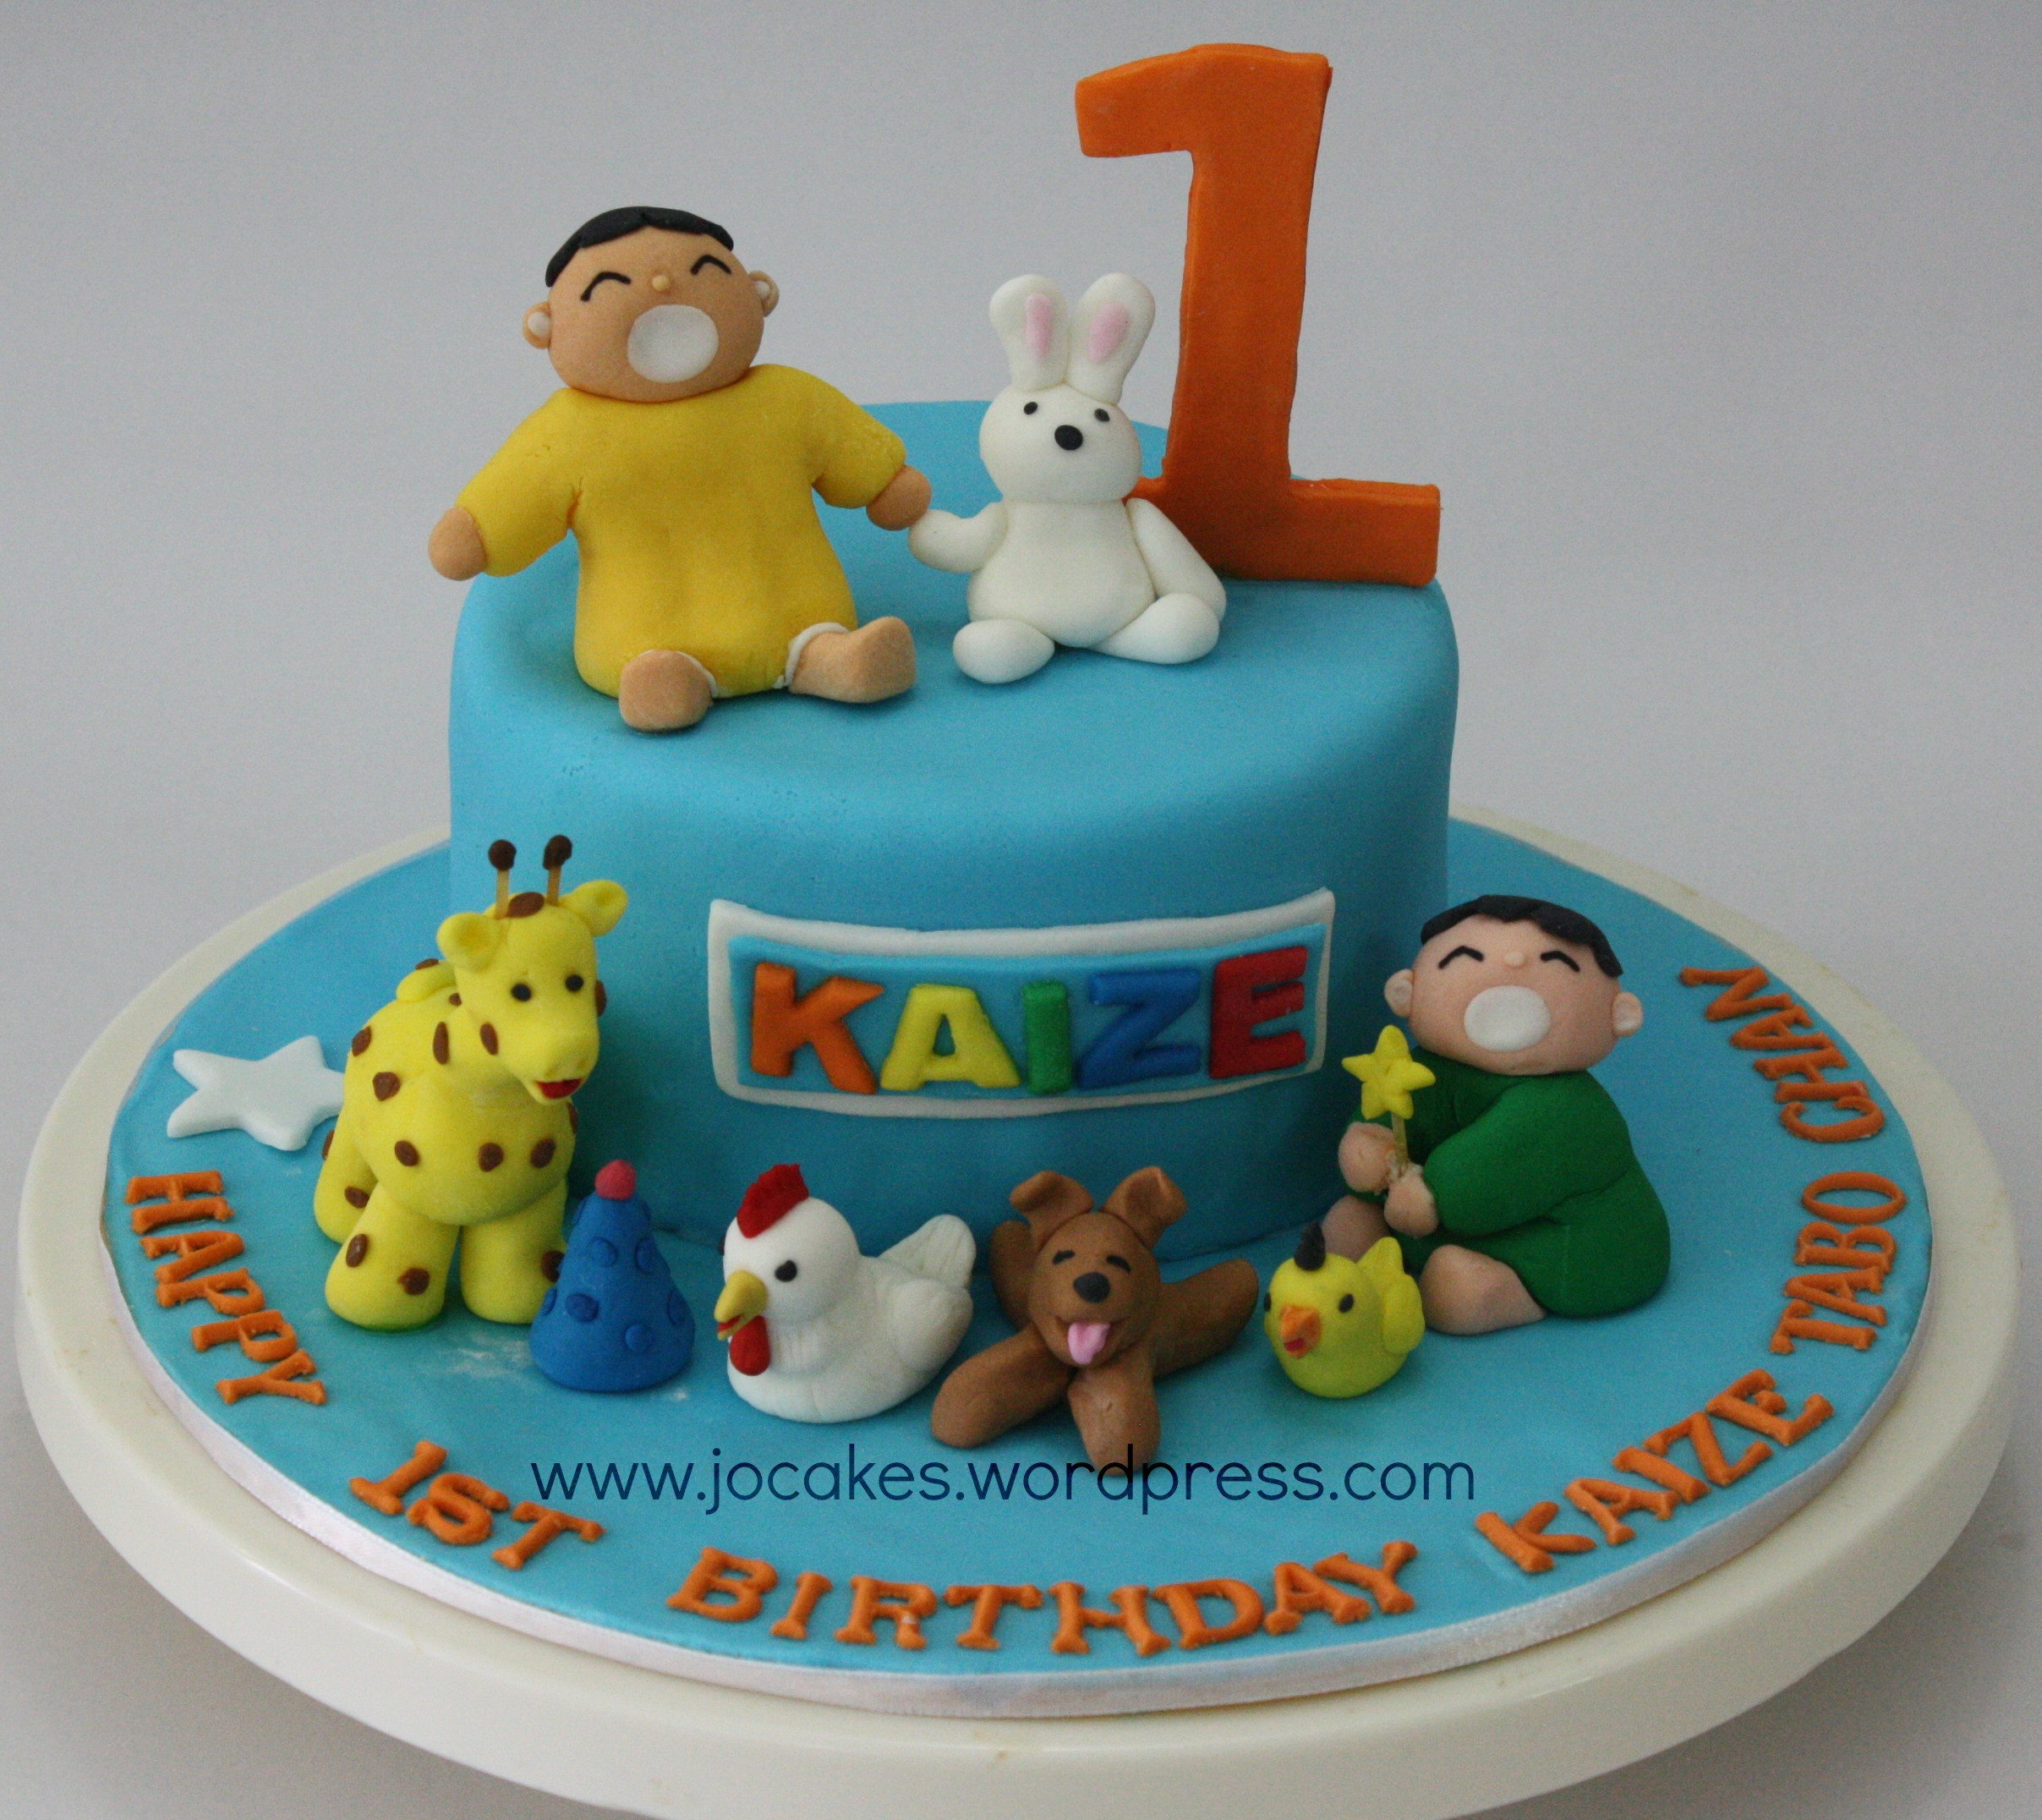 Best ideas about 1 Year Old Birthday Cake . Save or Pin Minna Tabo cake for 1 year old boy Now.